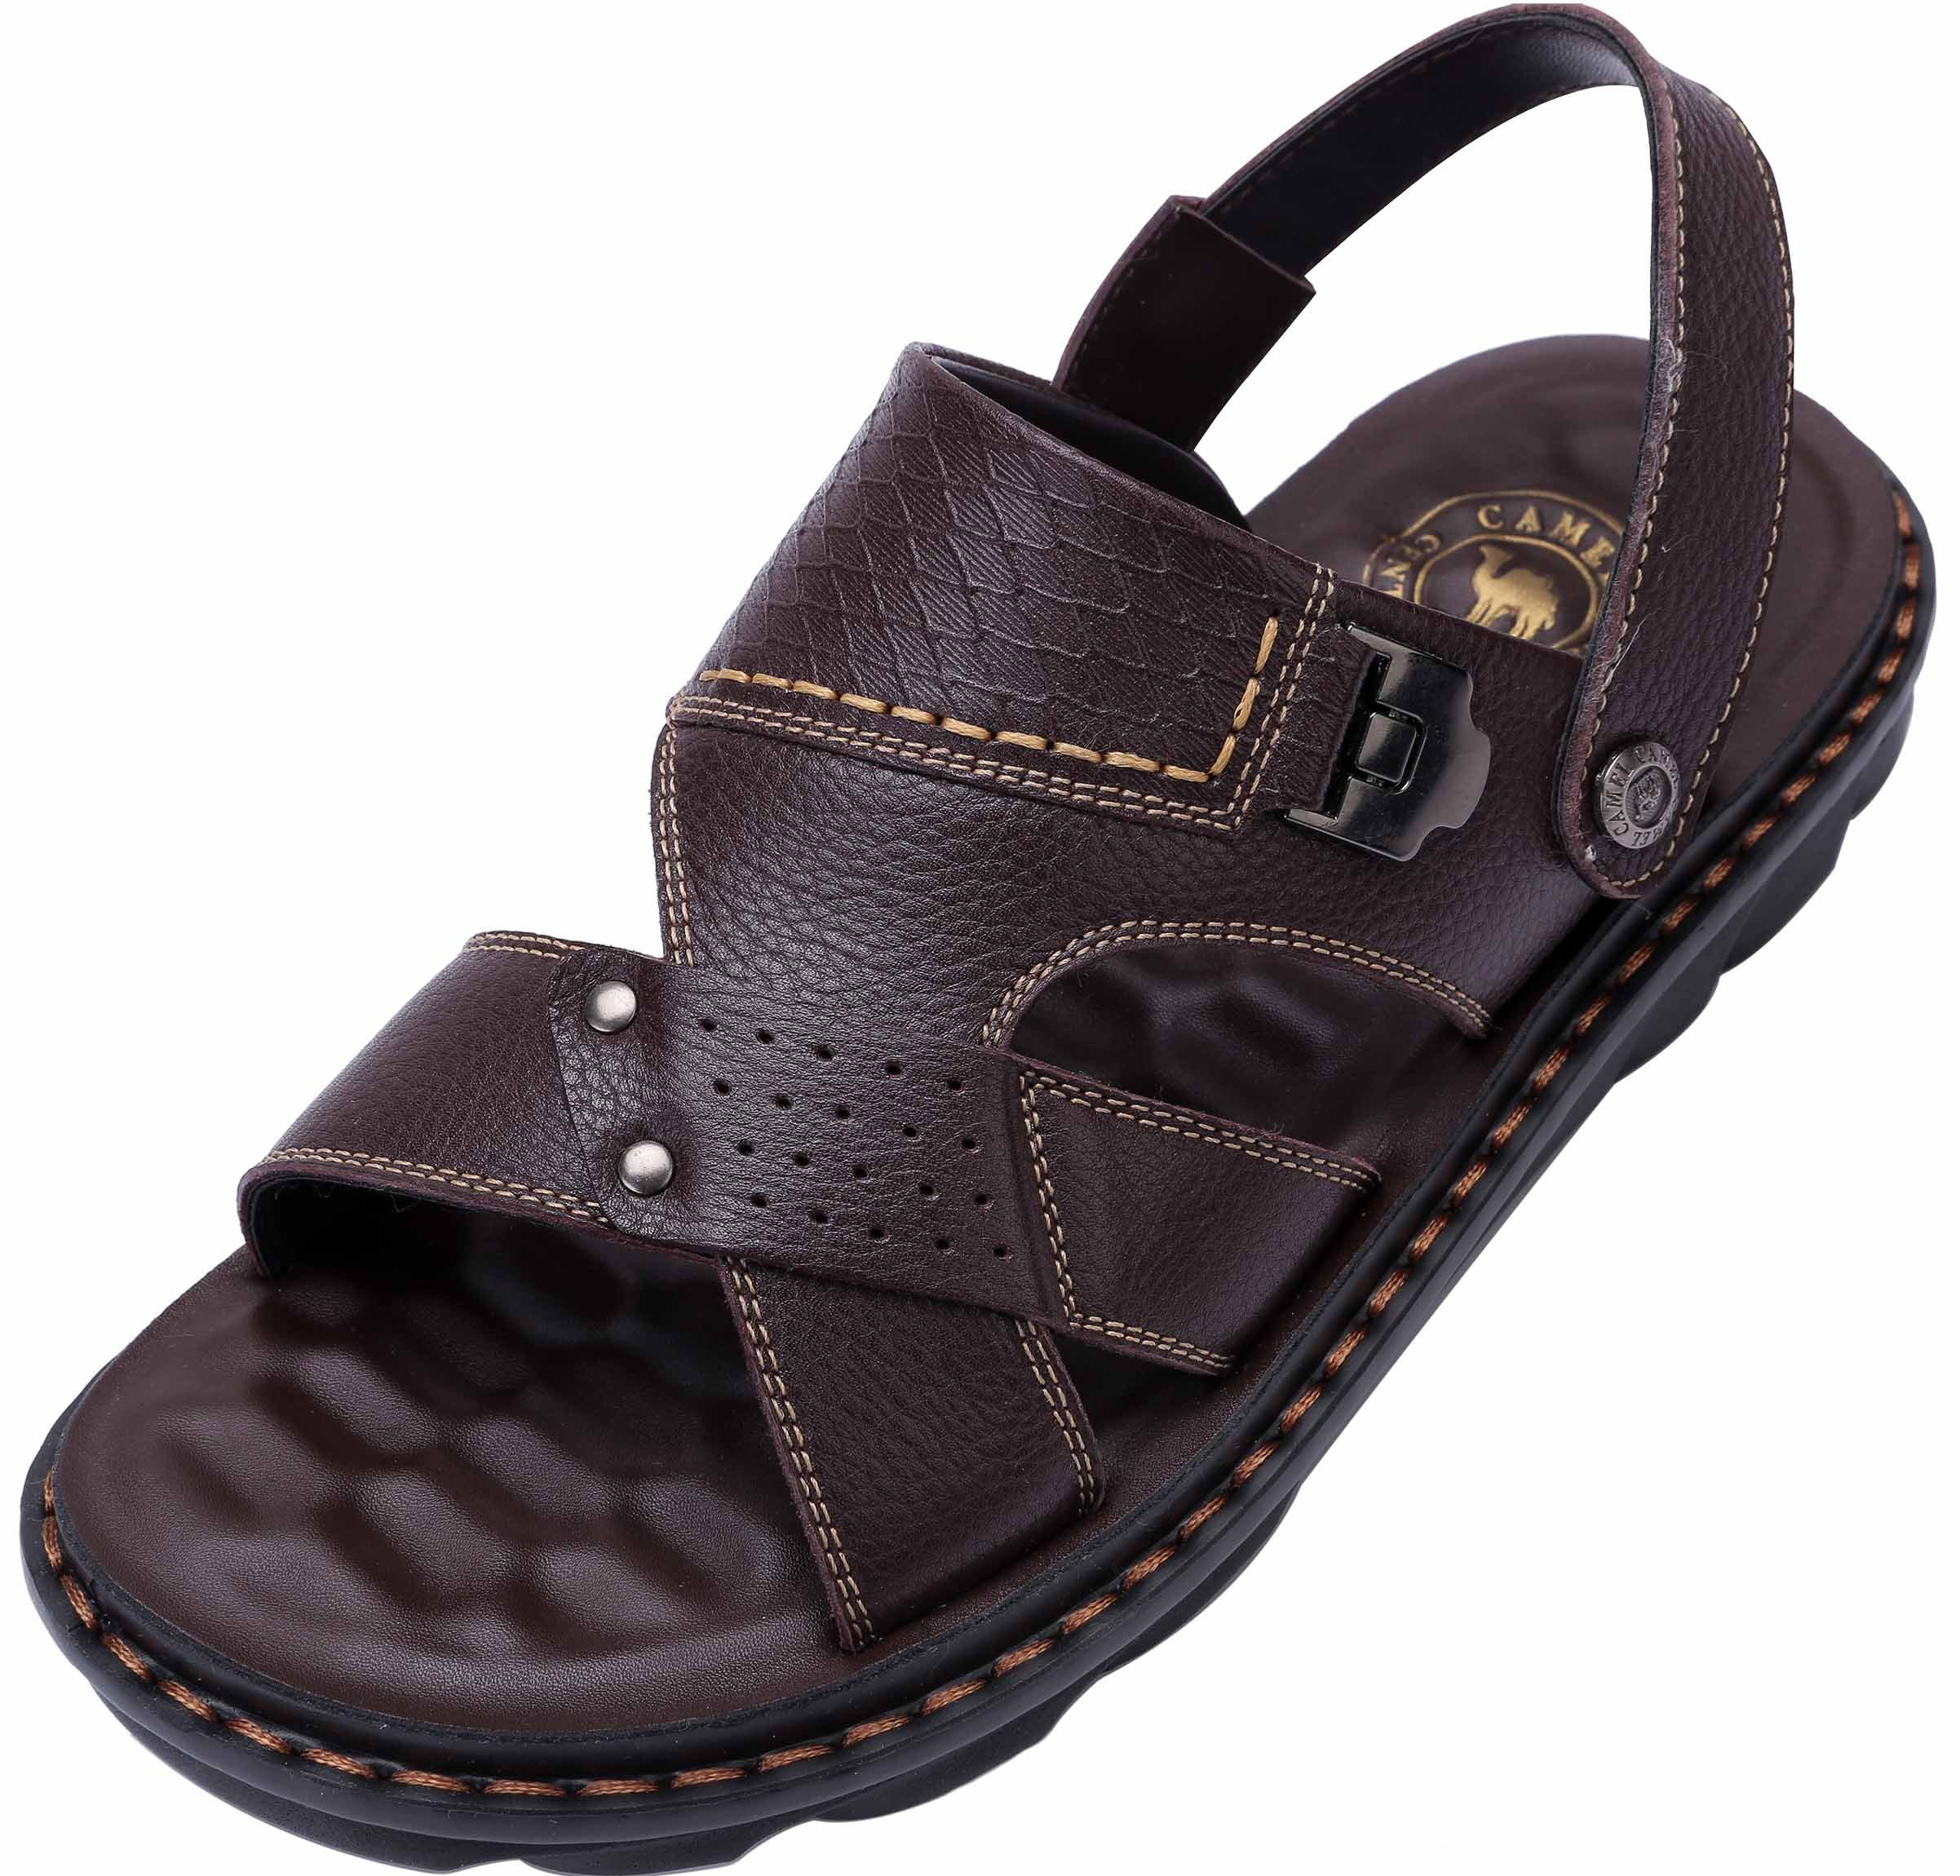 Camel Men's Summer Comfortable Leather Open-Toe Sandal Adjustable Straps Beach Walking Shoes for Outdoors, Dark Brown 270mm